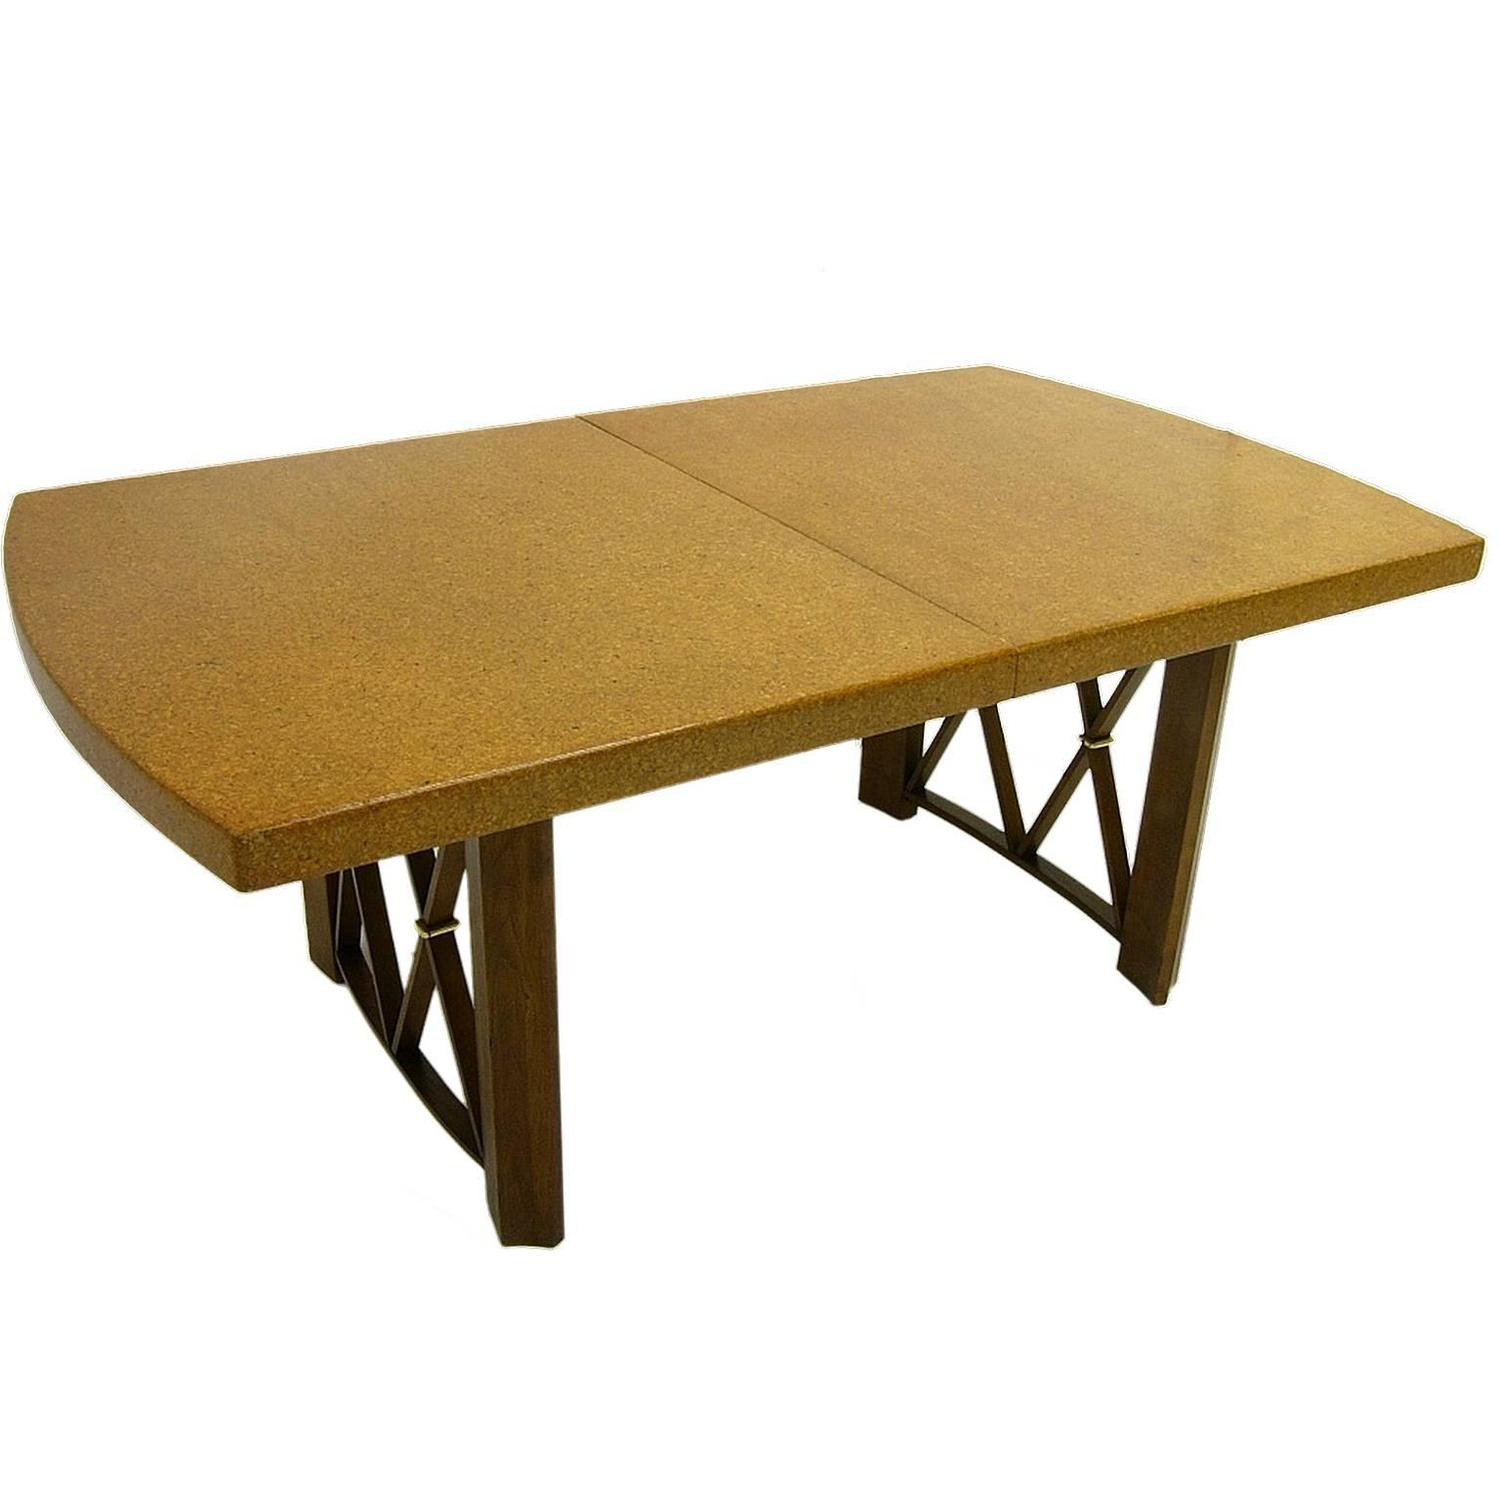 Paul Frankl Cork Top Dining Table By Johnson Furniture